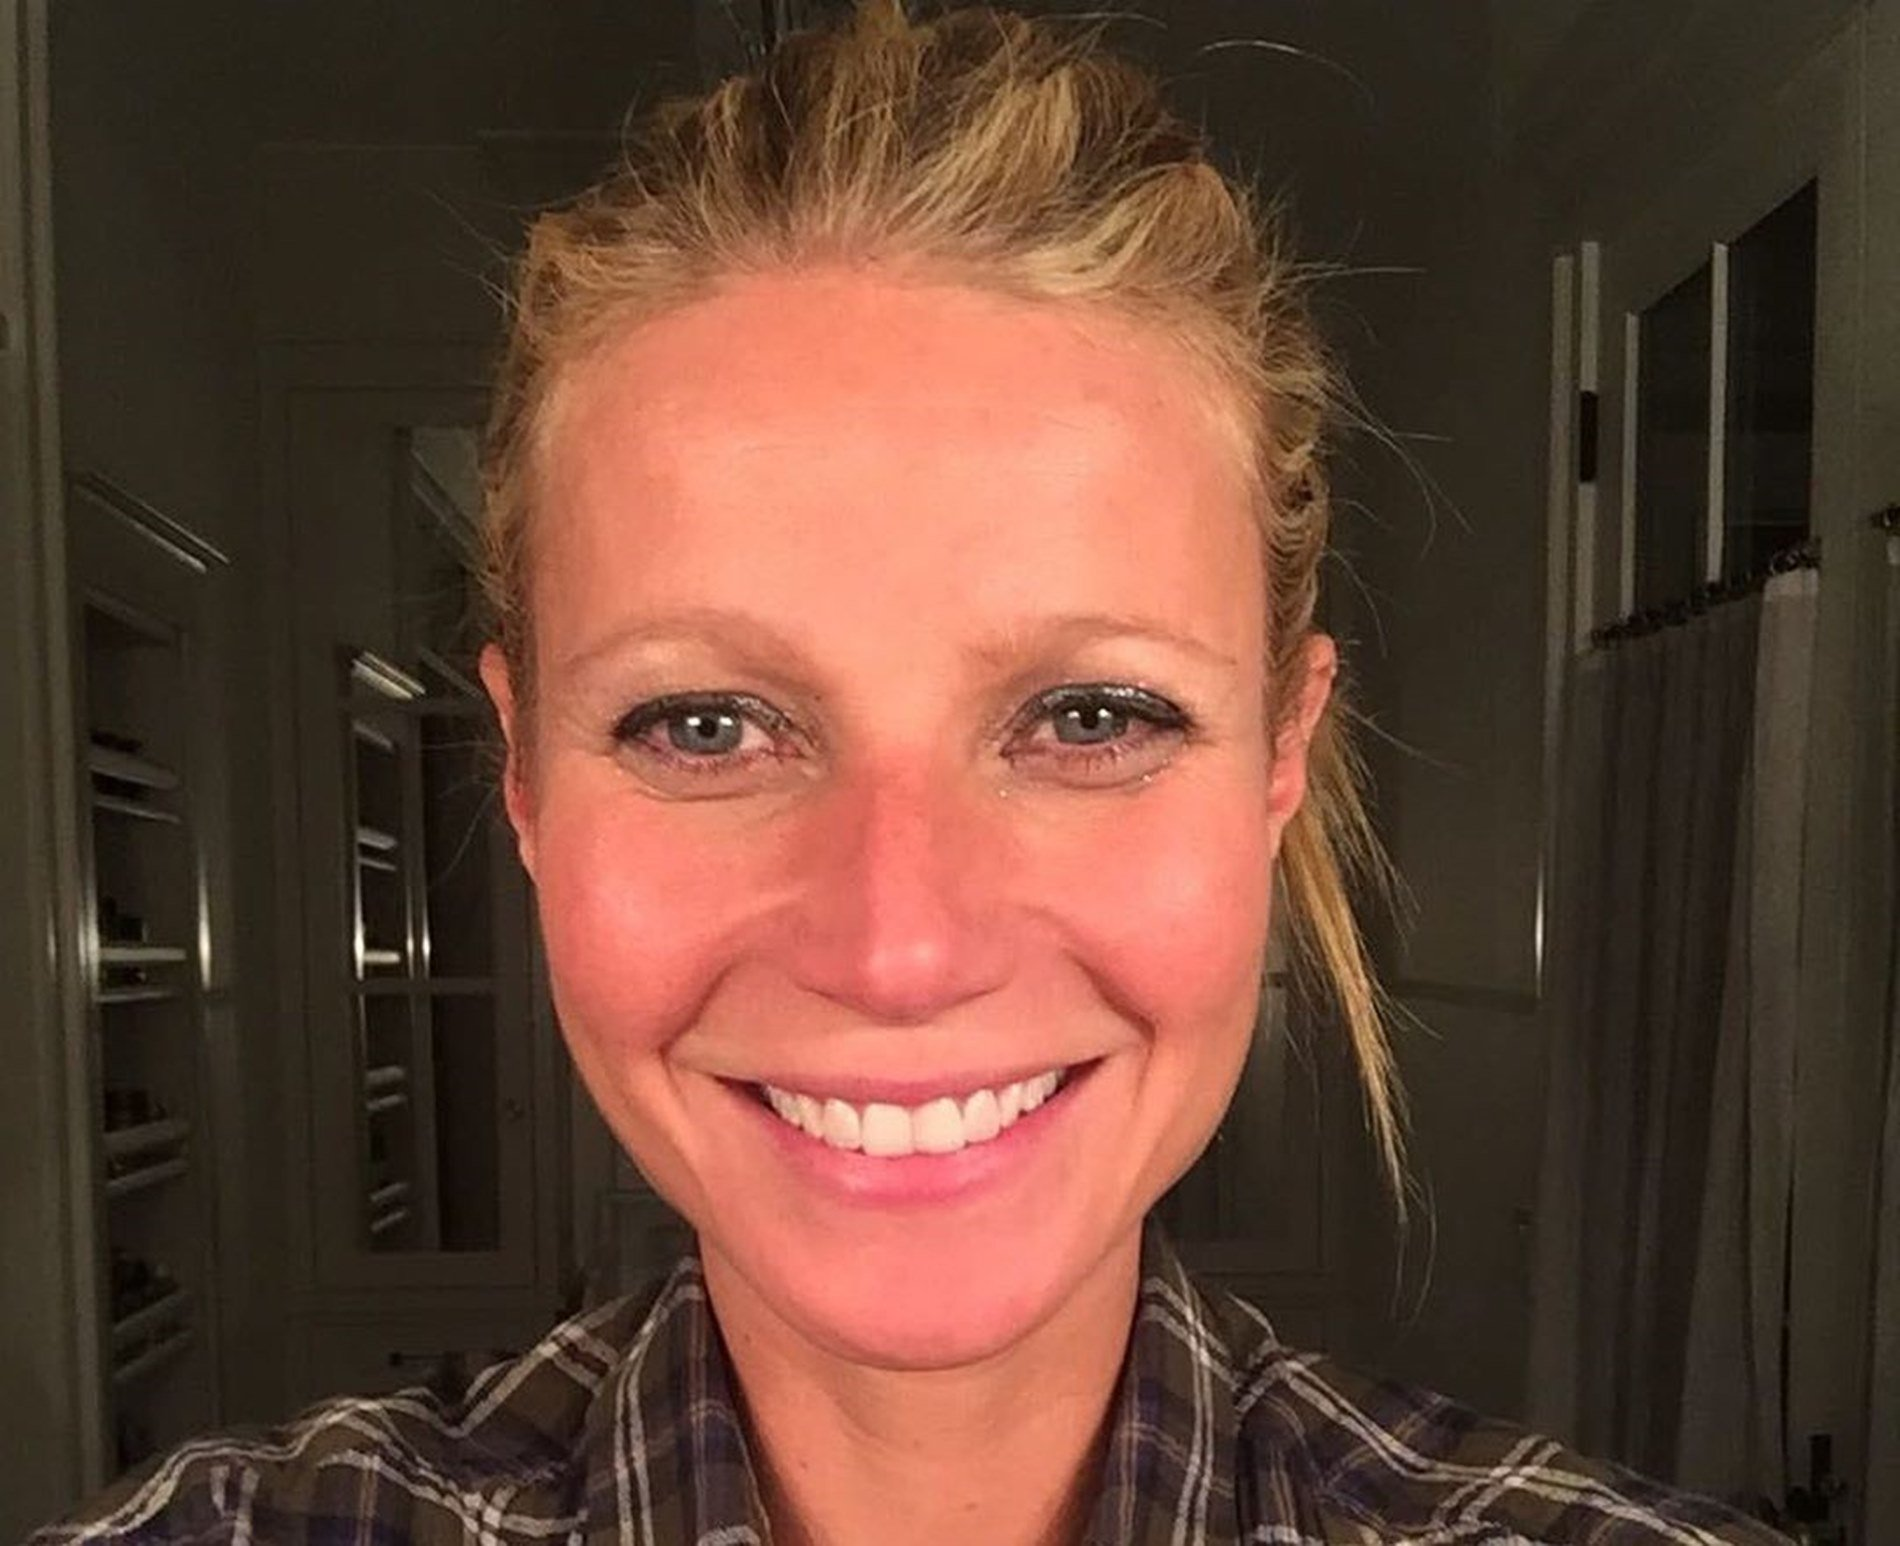 Gwyneth Paltrow Shares Out-Of-This-World Birthday Suit Picture As She Turns 48 — For Some Fans This Is A Disappointing Turn